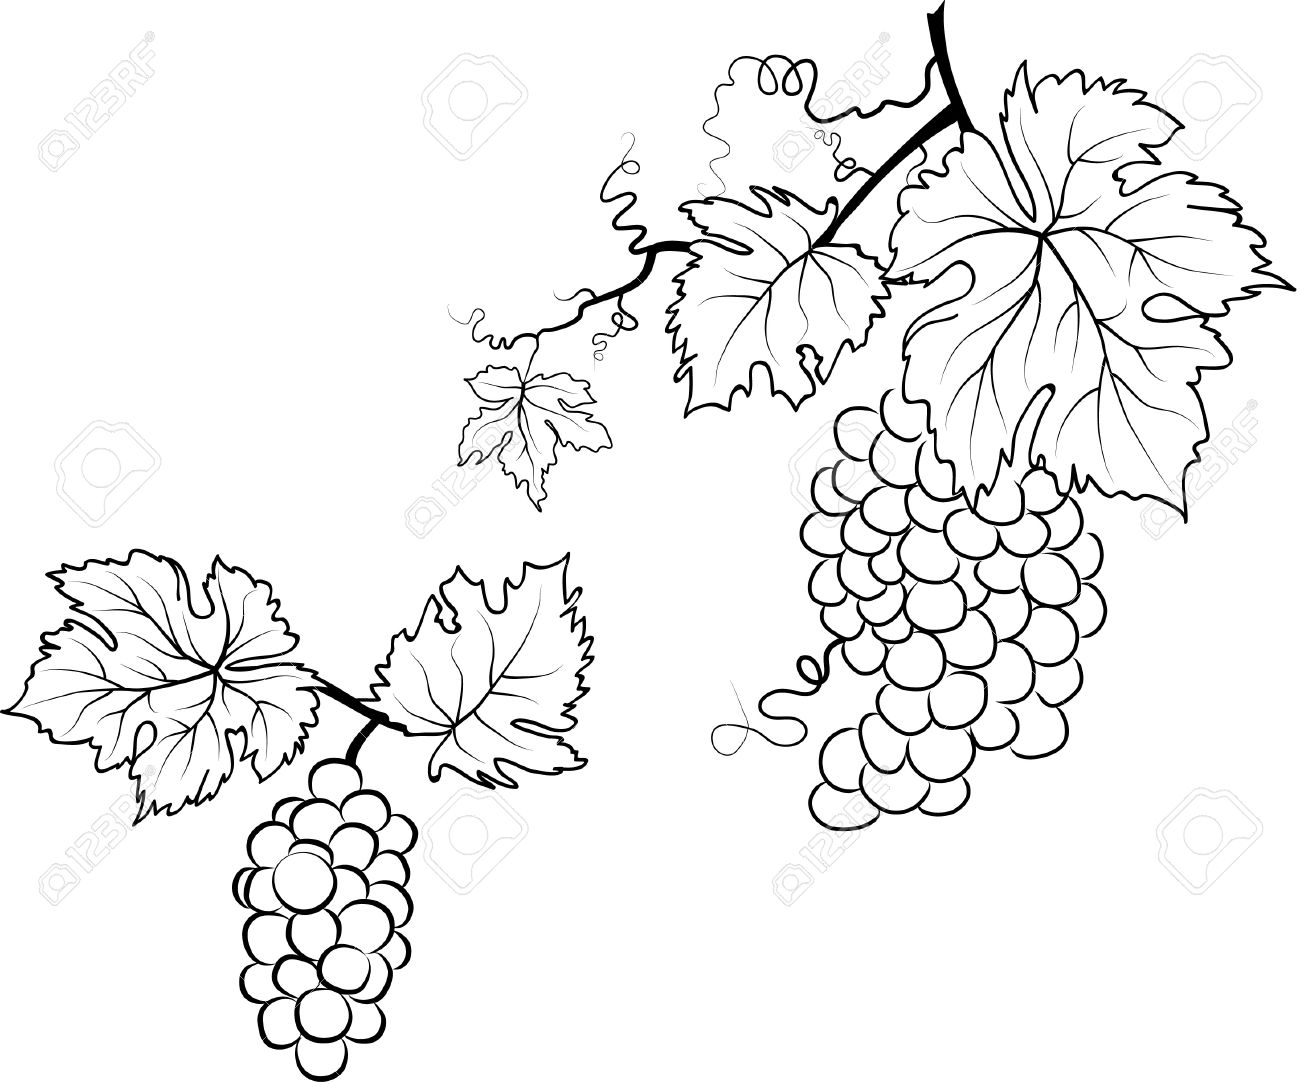 Illustration of grapes and leafs Stock Vector - 14068195